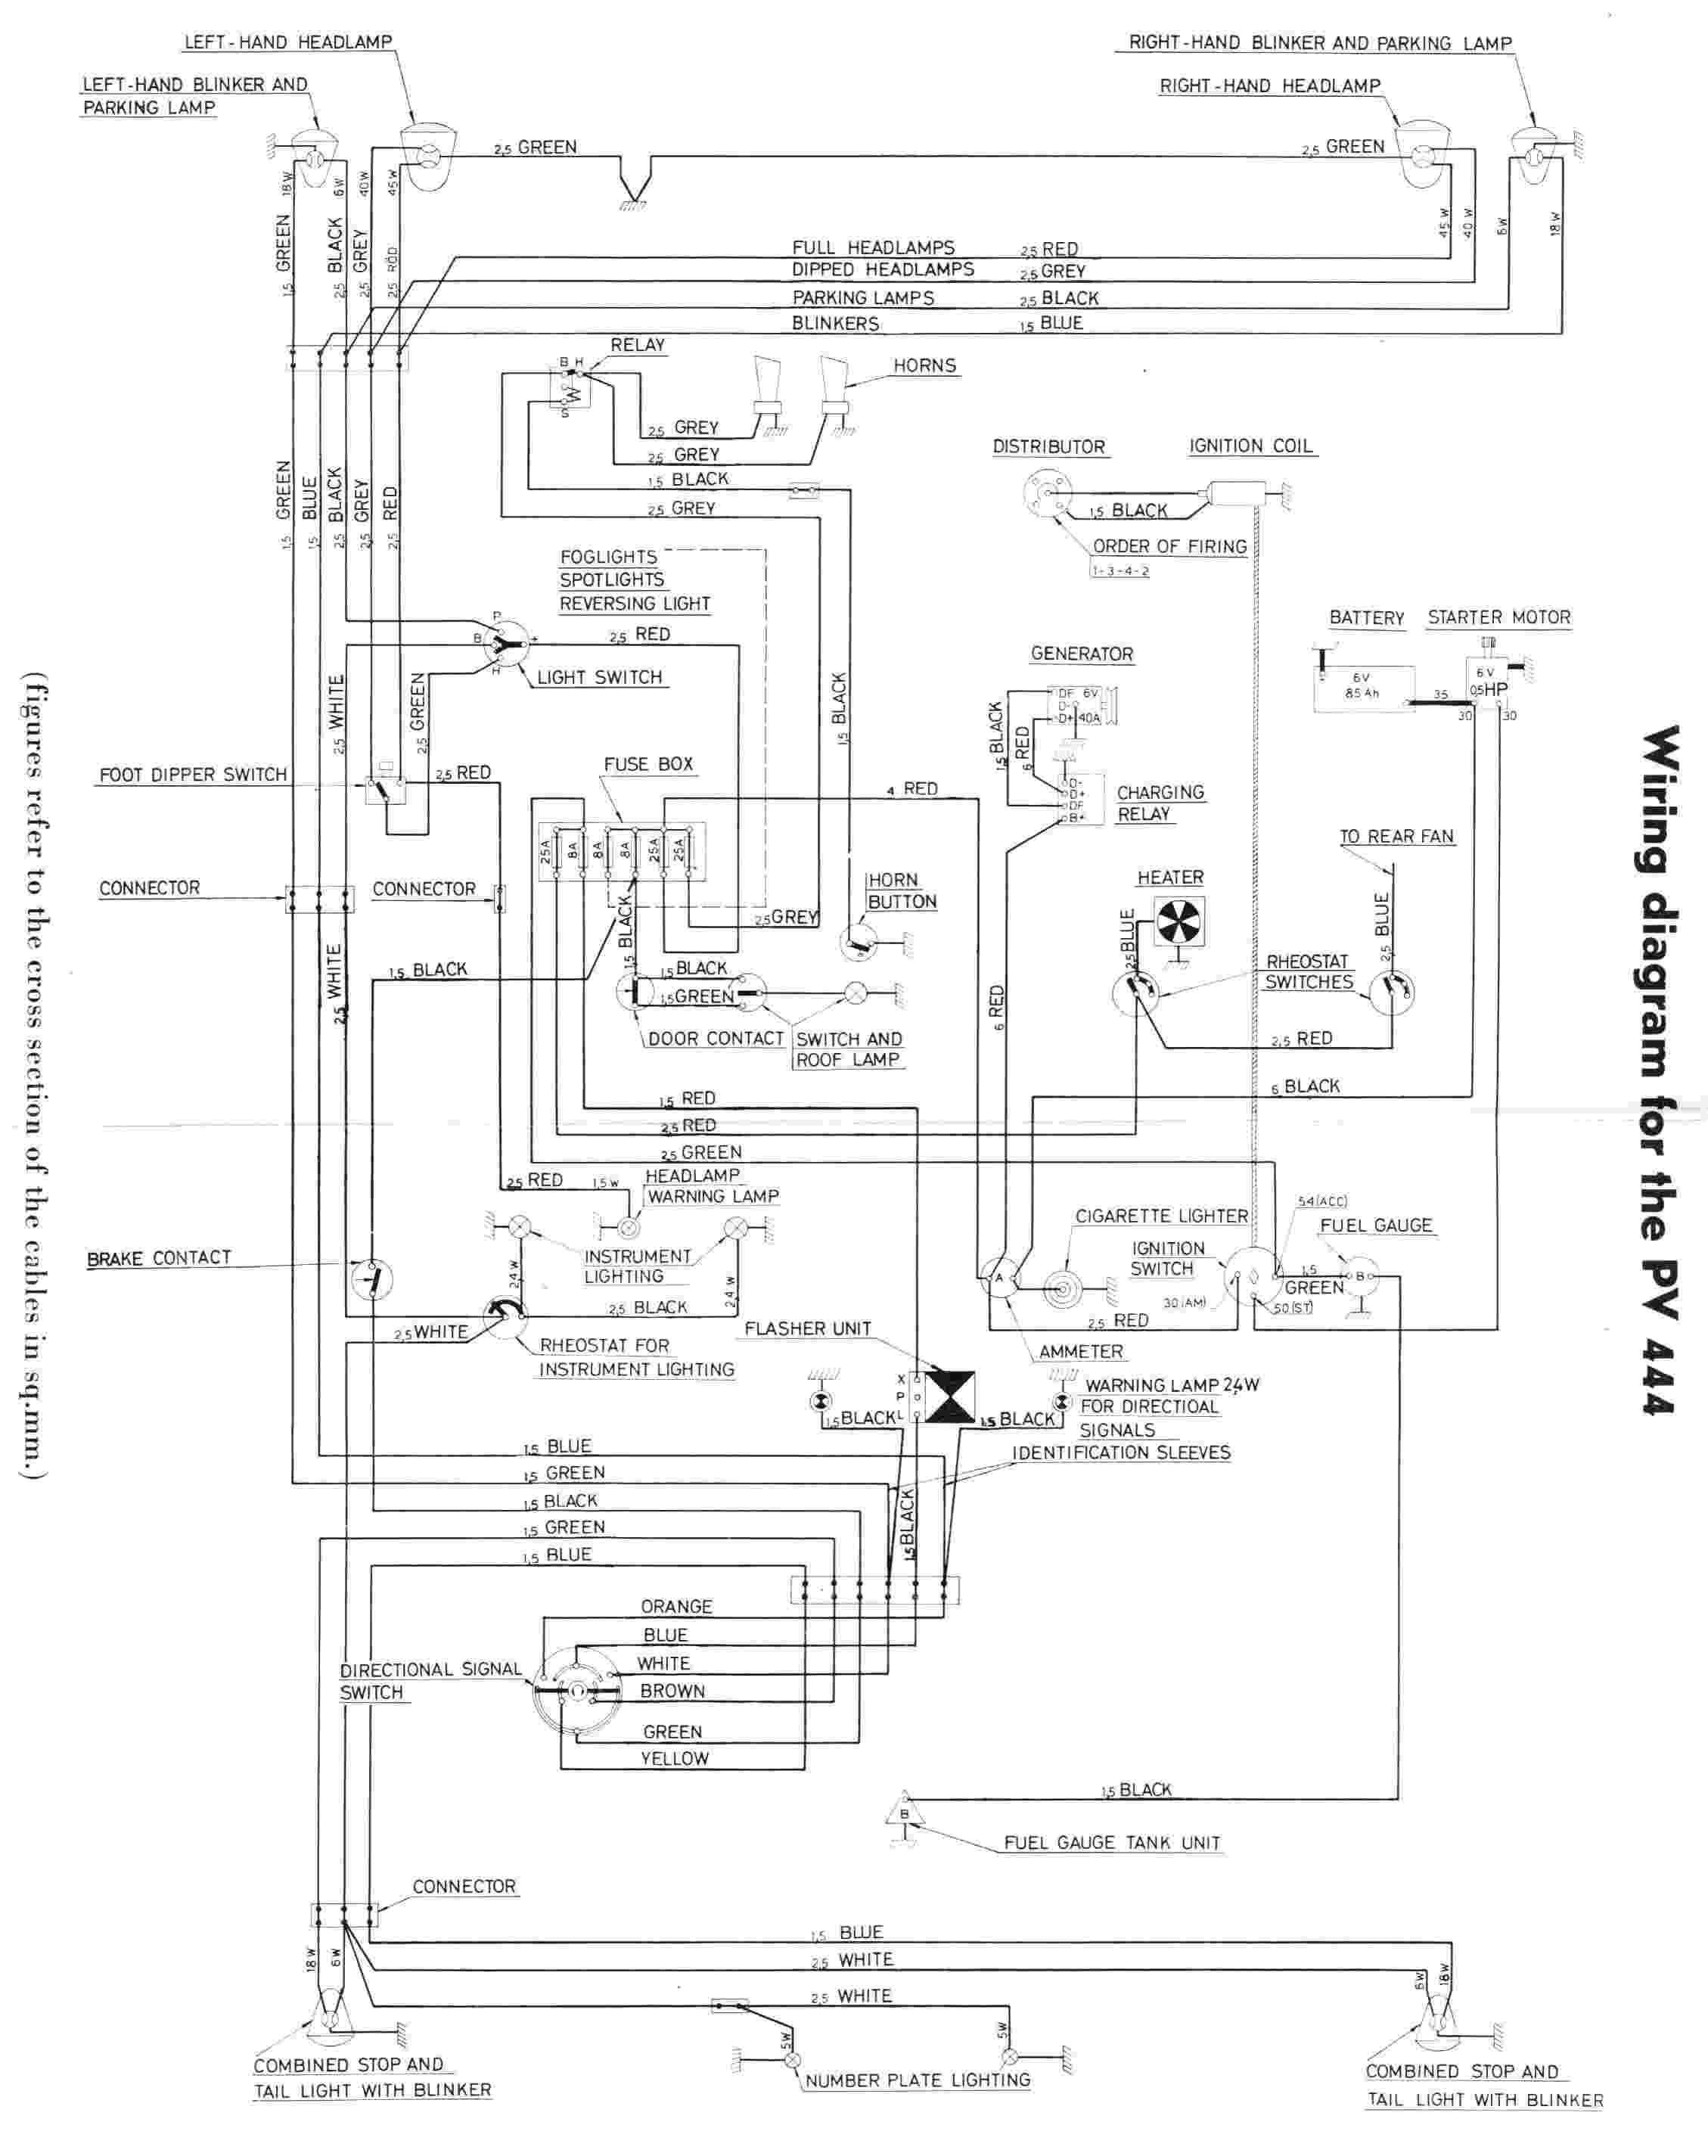 small resolution of wiring diagram oldsmobile wiring diagrams volvo wiring diagrams 1997 rh 48 jennifer retzke de 1997 volvo